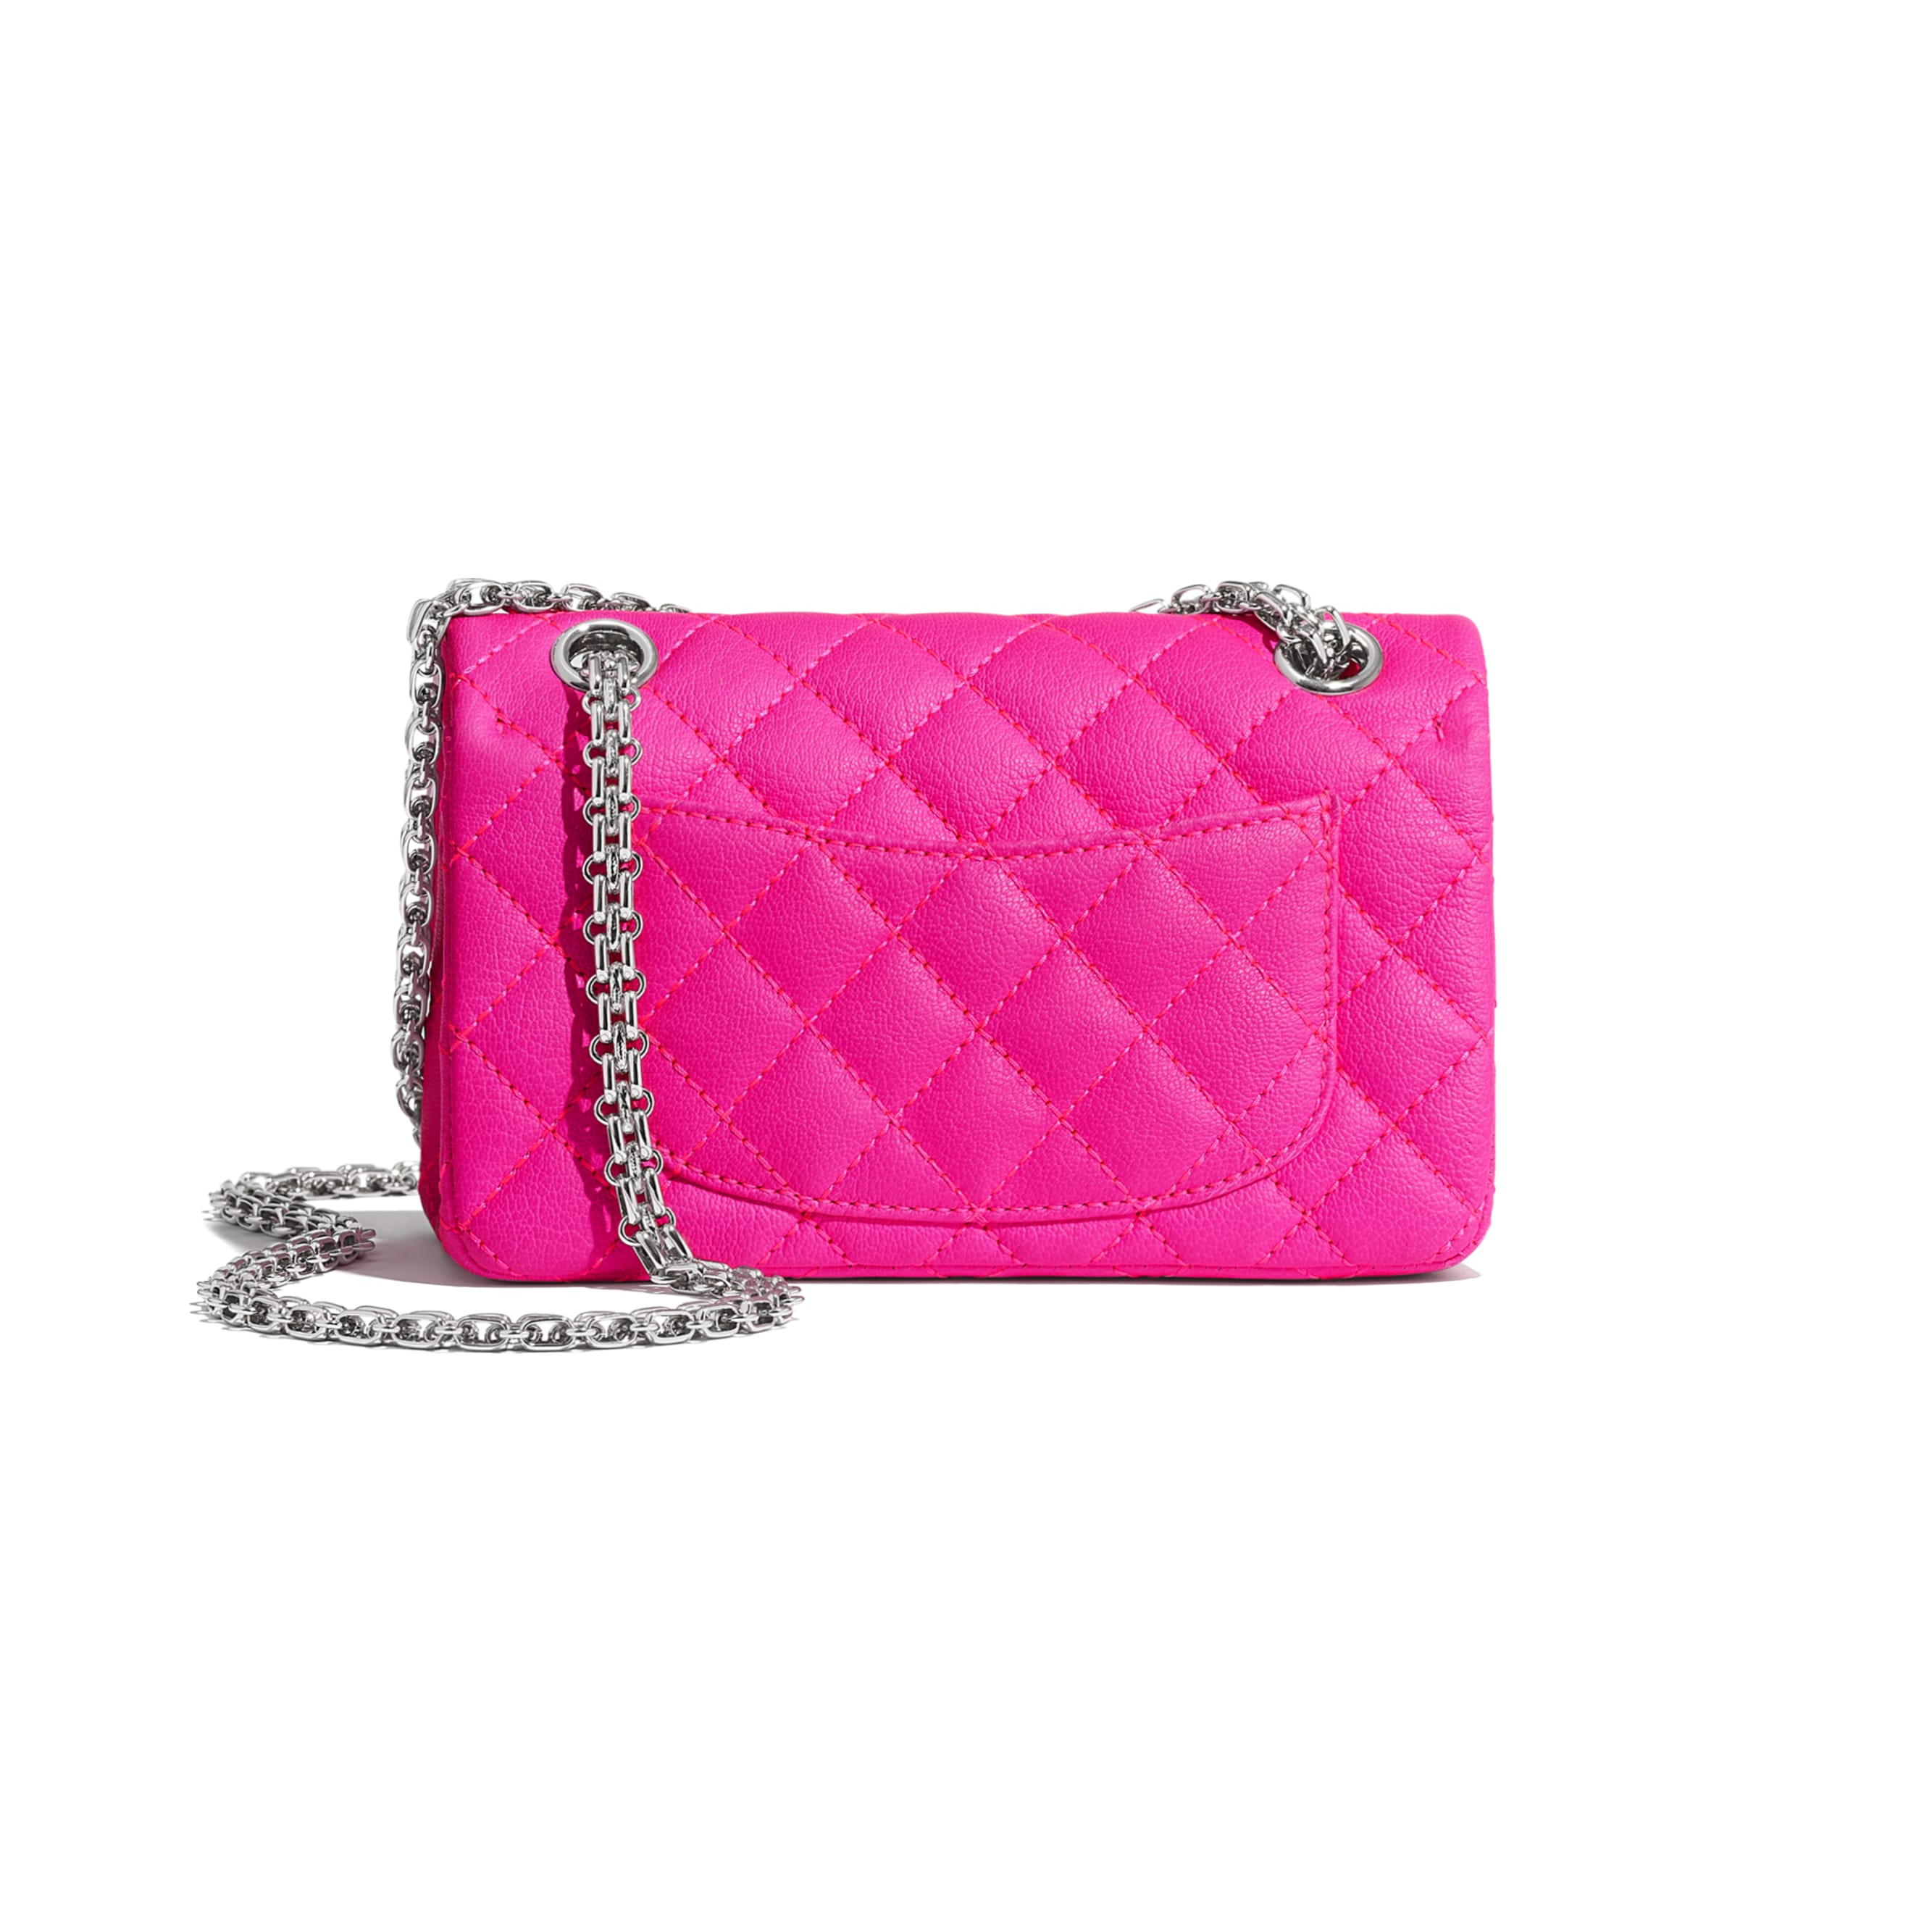 Small 2.55 Handbag - Pink - Goatskin & Silver-Tone Metal - Alternative view - see standard sized version